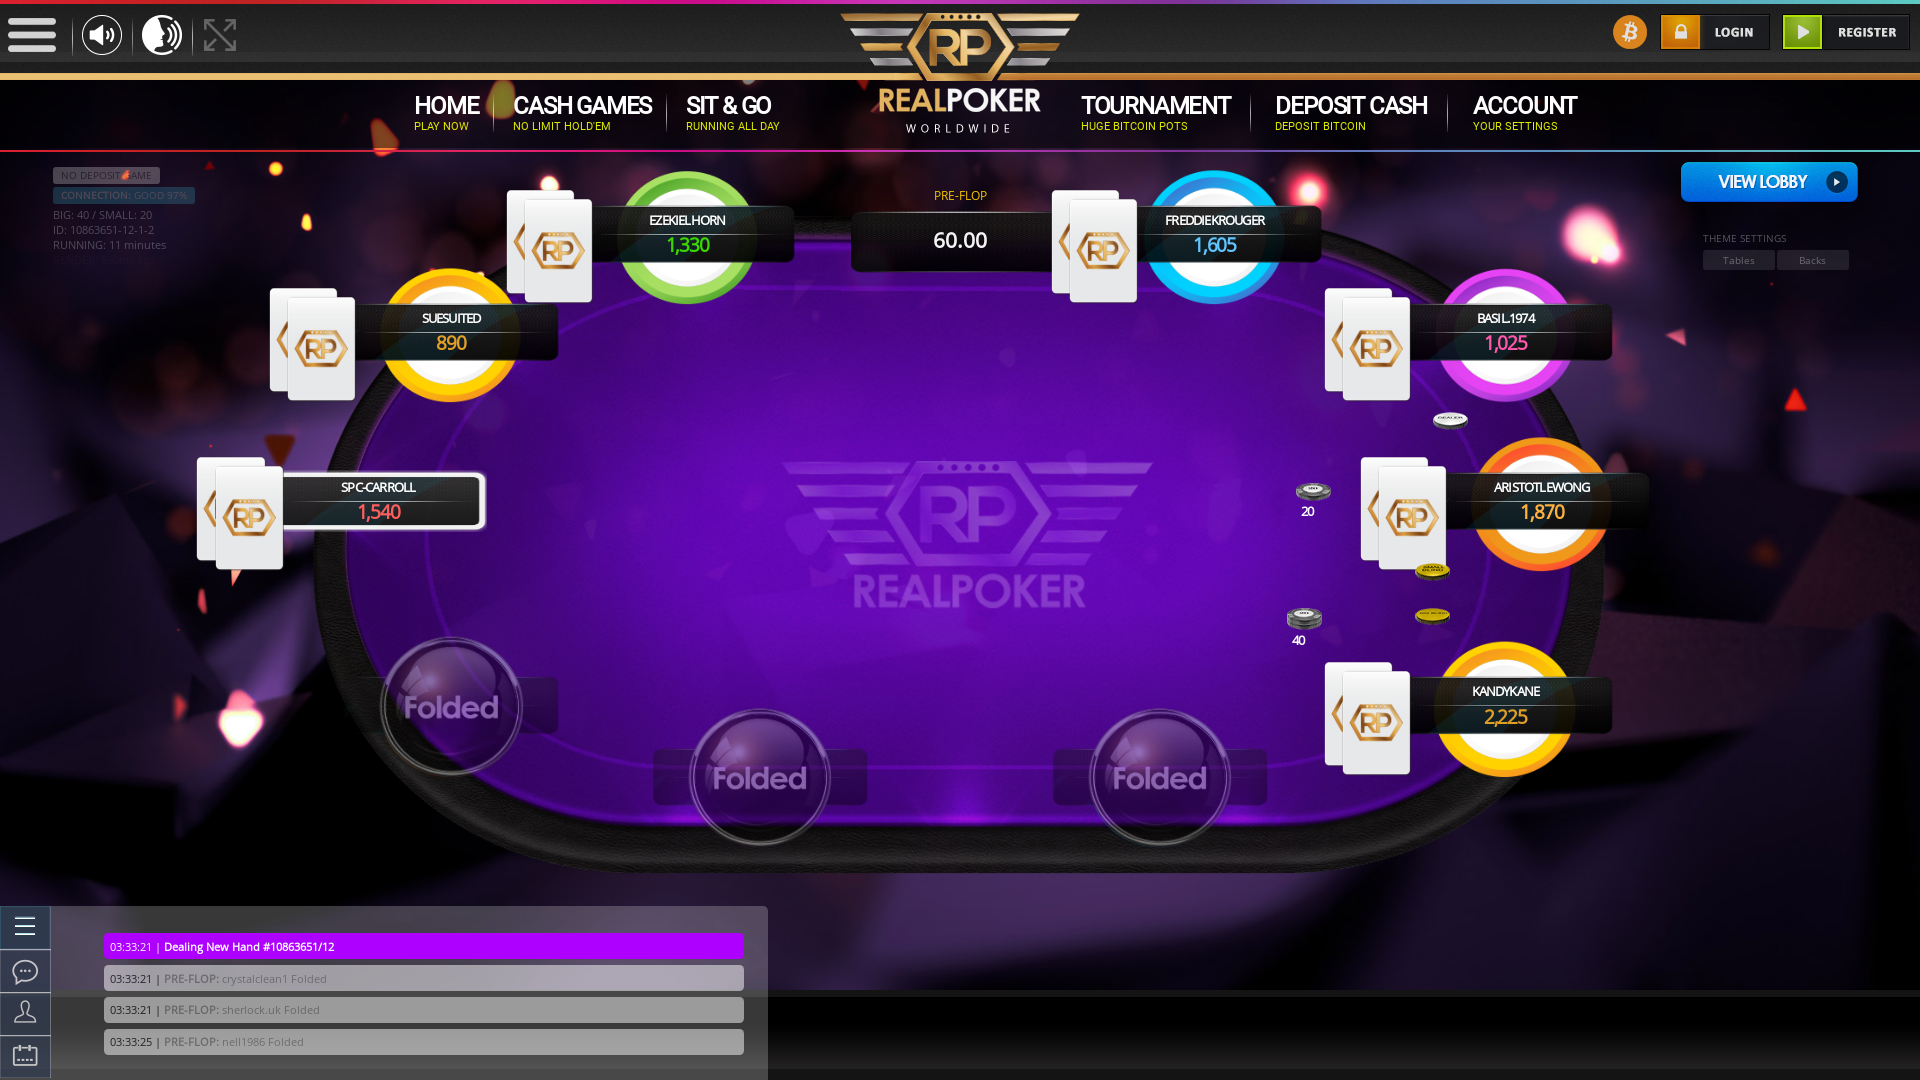 Macau Casino Bitcoin Poker from May